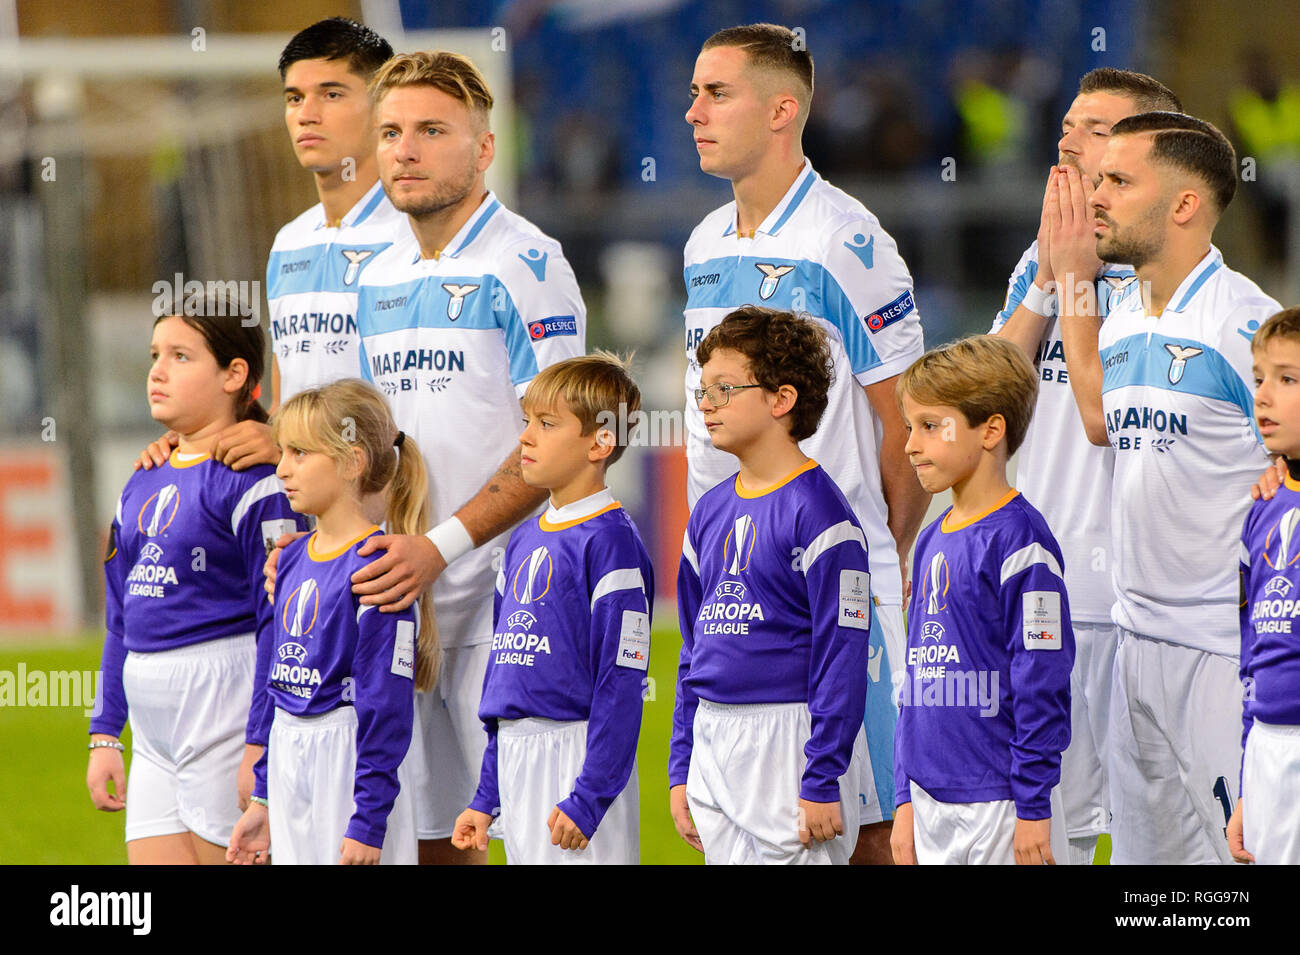 ROME - NOV 8, 2018: Ciro Immobile 17 before the match. SS Lazio - Olympique Marseille. UEFA Europe League. Stadio Olimpico. - Stock Image